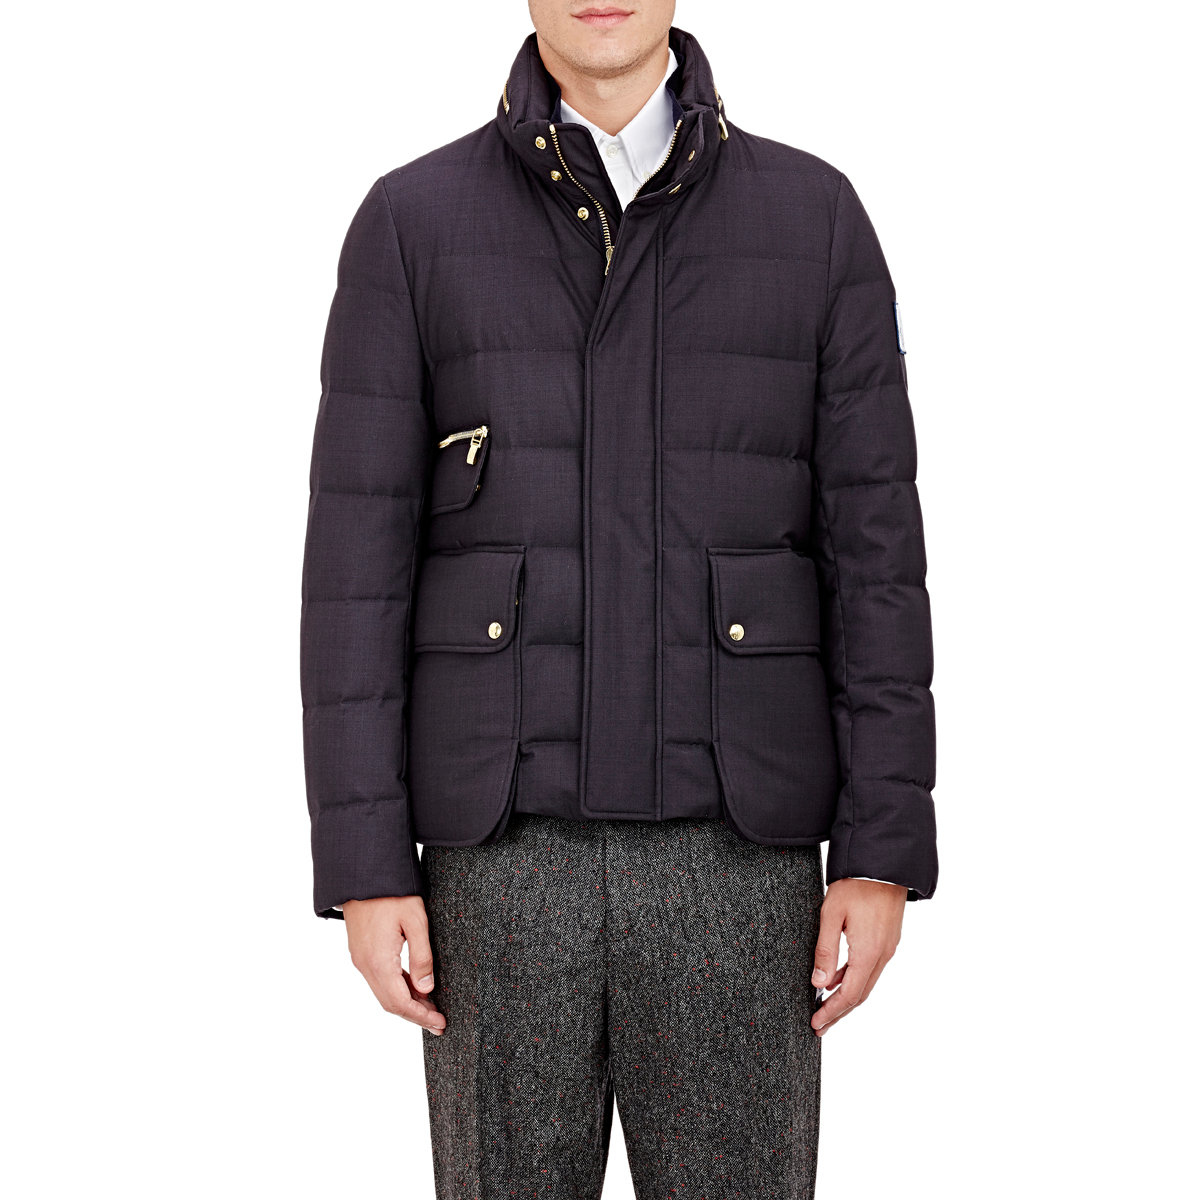 fb6f6e6b4 Moncler Gamme Bleu Black Quilted Jacket With Zip-away Hood for men